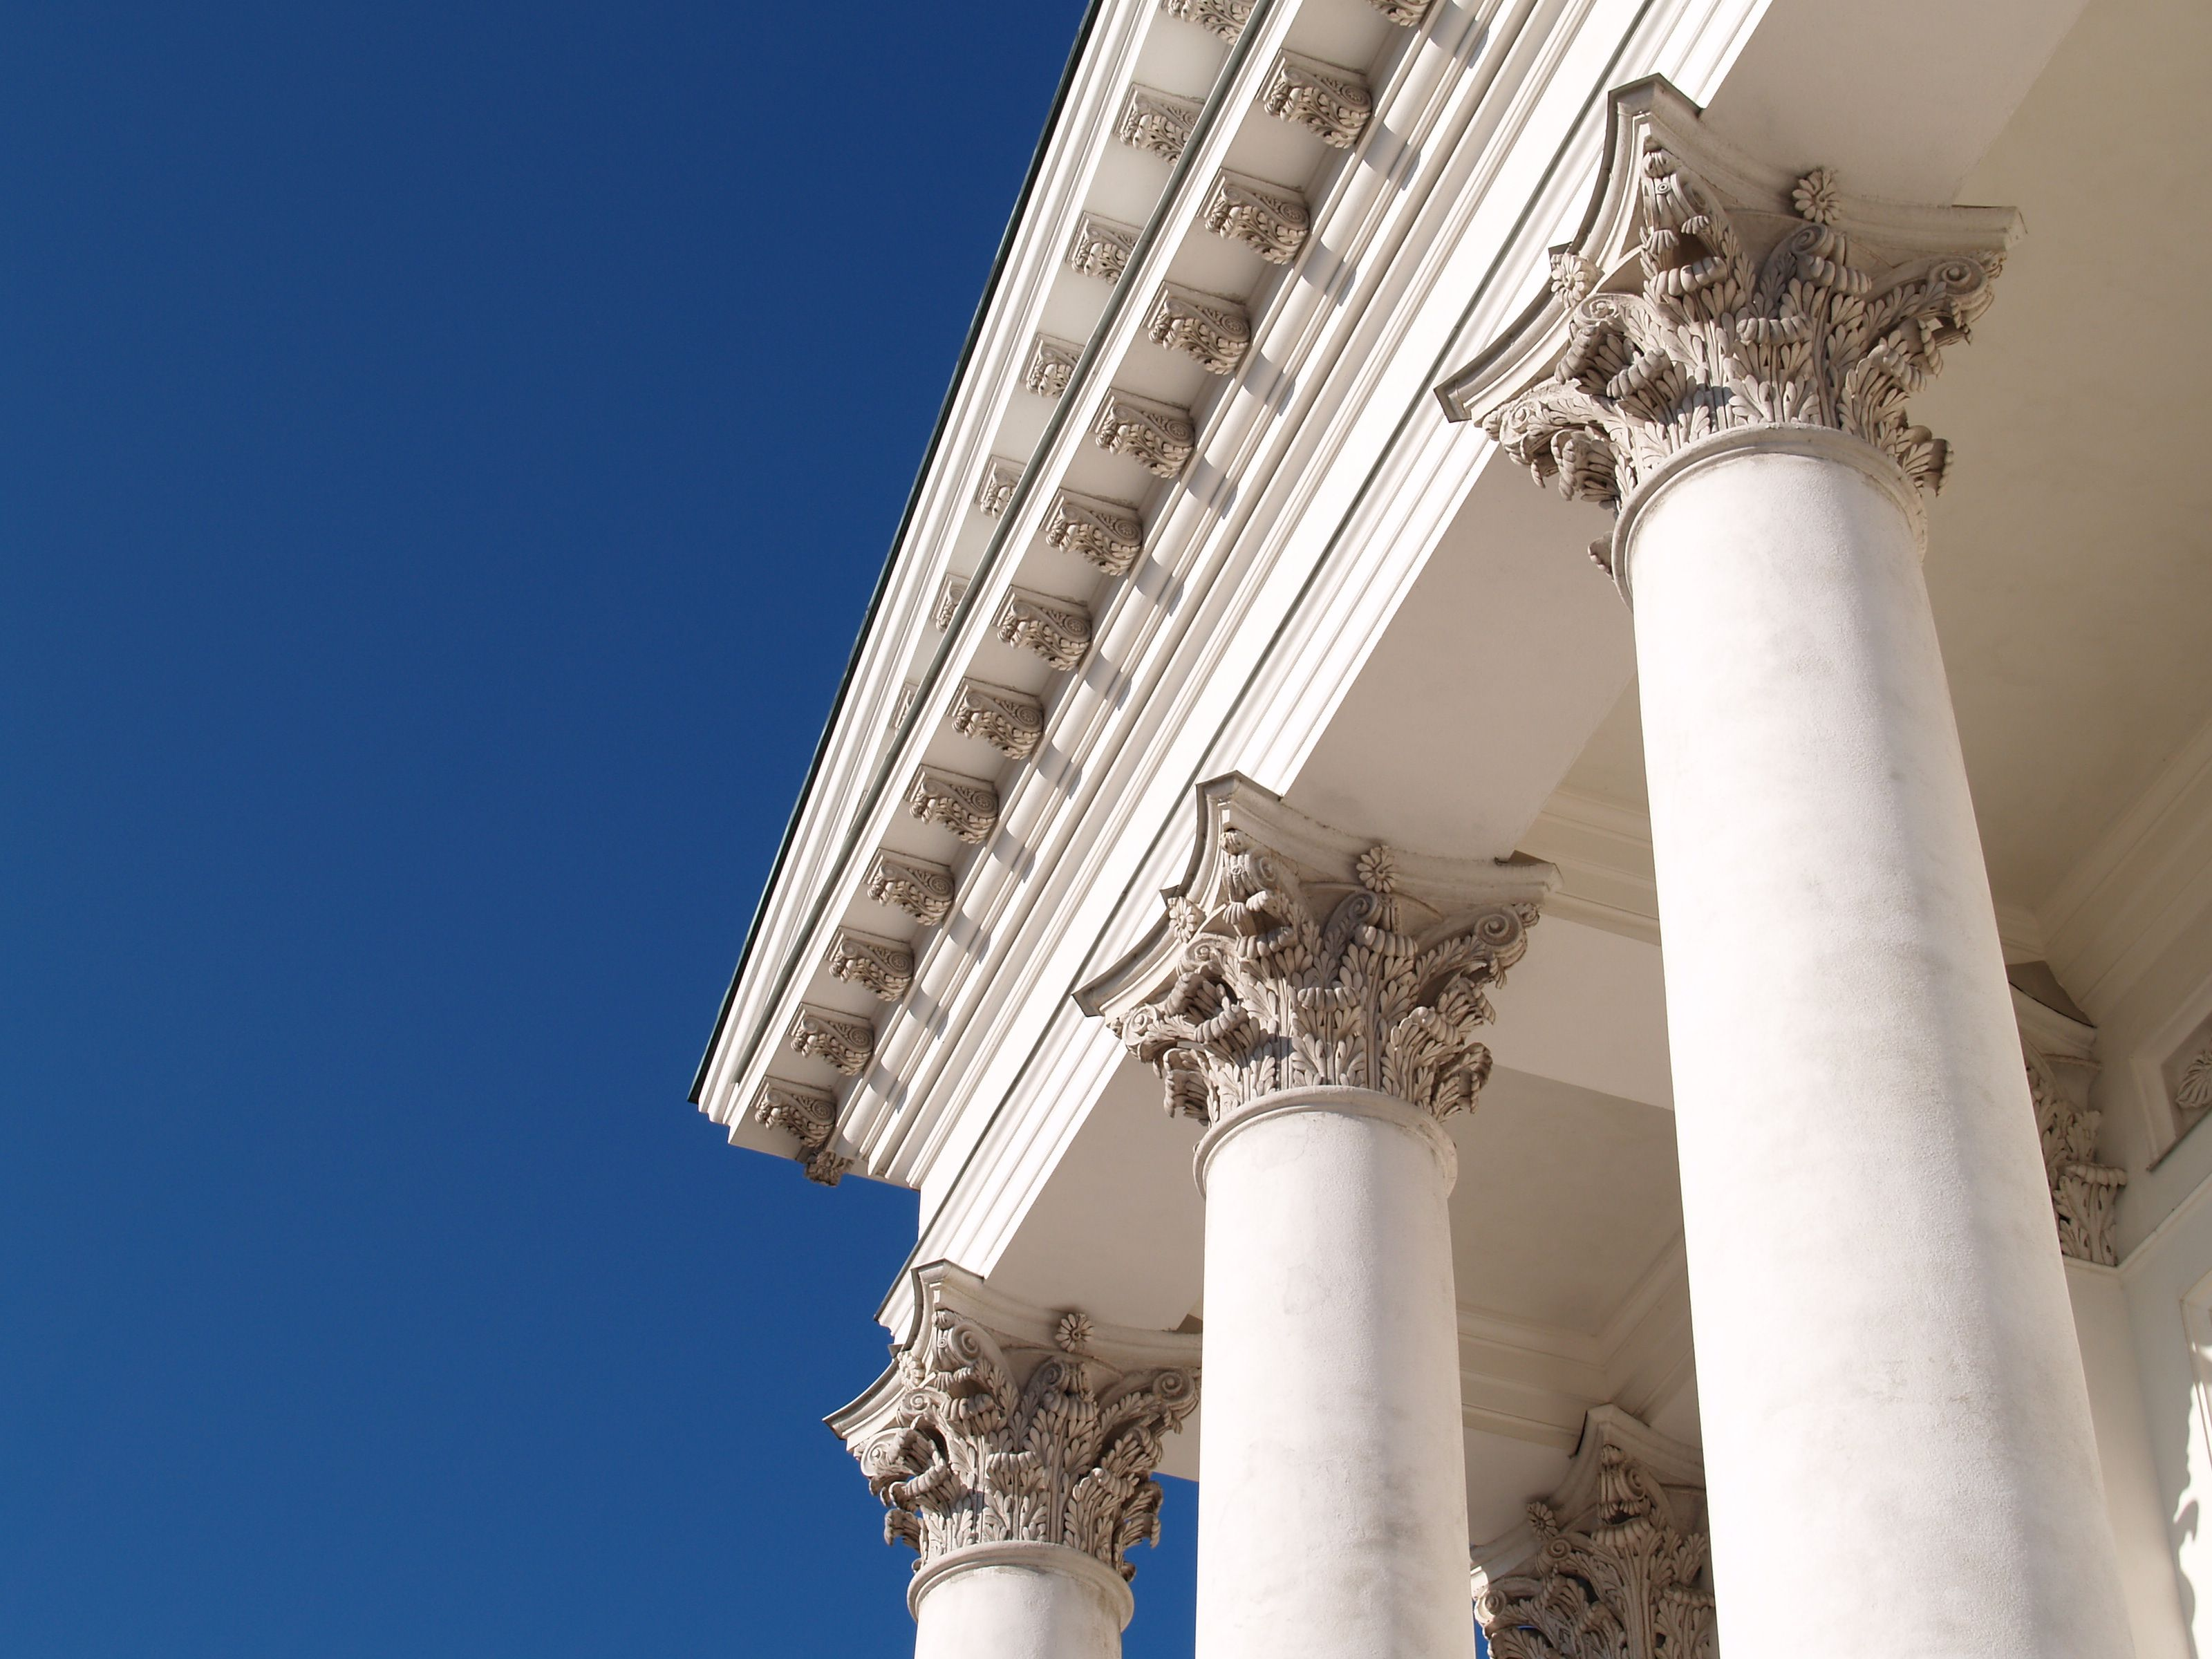 Roman Corinthian Order Columns : Corinthian order helsinki lutheran cathedral this is the